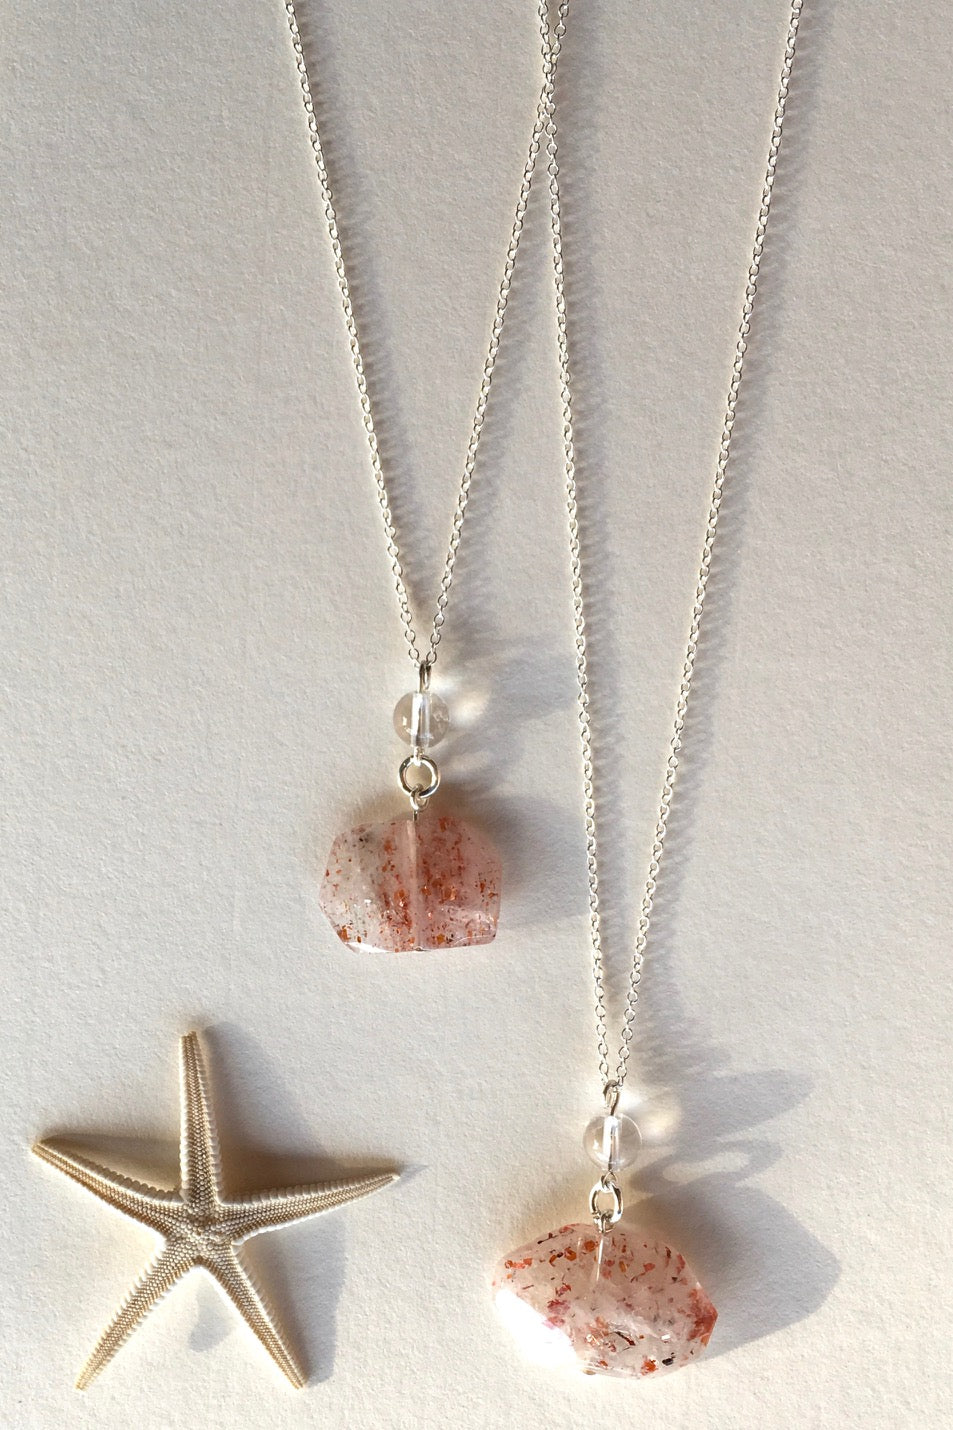 Pendant of Strawberry Quartz with Rock Crystal is unusual stone with flat cut and faceted to reveal all the lovely glittery inclusions hidden inside featuring 2.5cm to 3.5cm long total Each pendant drop.